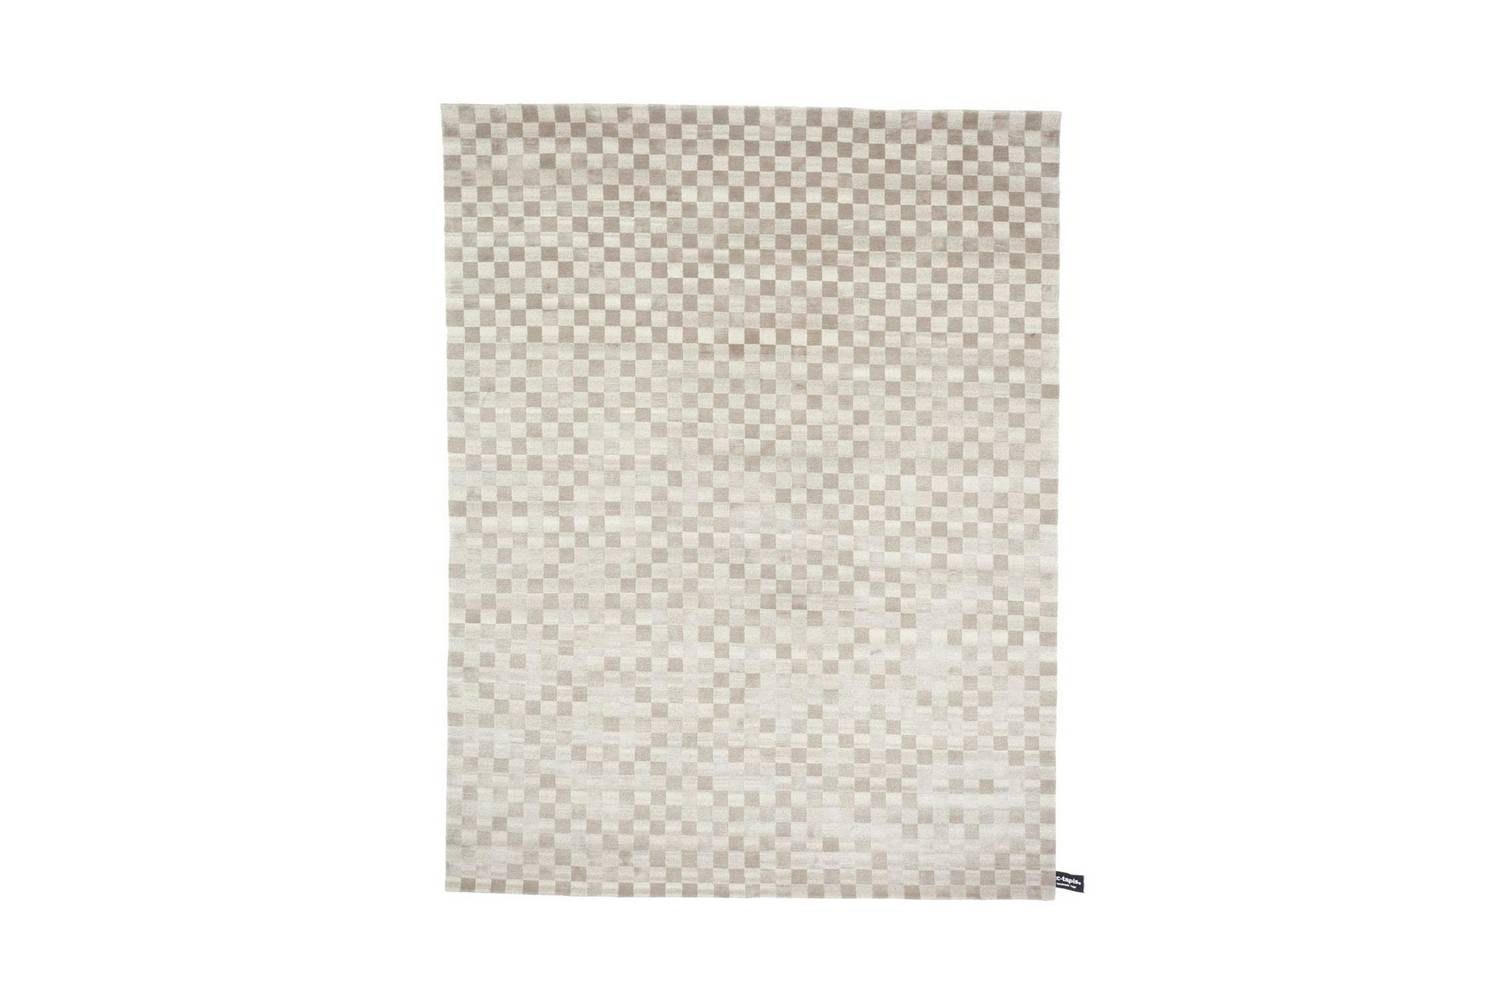 Damier 2.0 Rug by Contemporary Collection for CC-Tapis